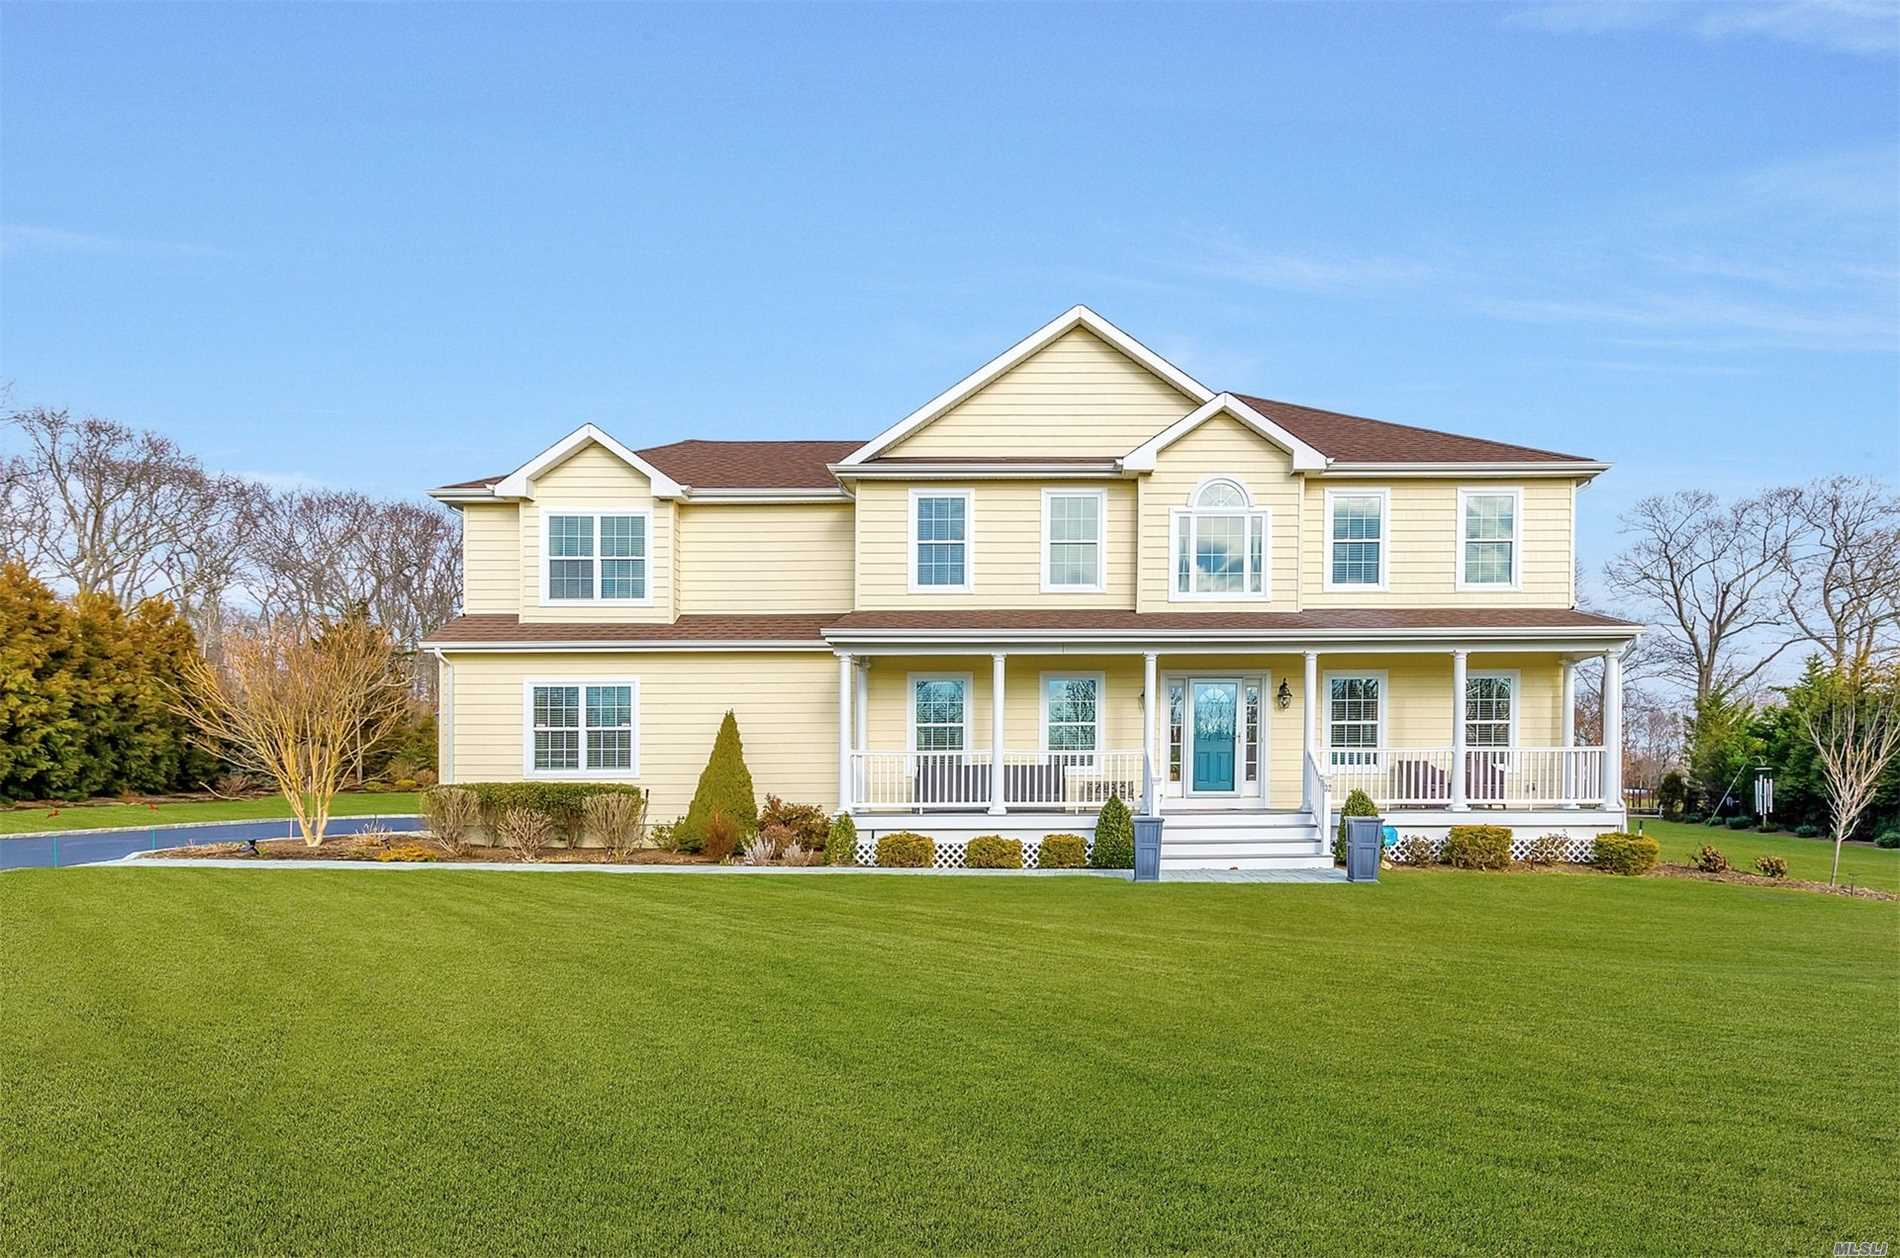 The Pleasures Of Long Island's North Fork Right At Your Doorstep. This Pristine 2012 Built 5 Bedroom Colonial Sits On A Secluded 3 Home Private Dead End Cul De Sac. Expansive Vista-View Back Yard With Specimen Plantings And Lots Of Room To Play. Wonderful Year Round Community Interspersed With Second Homes For Urban Dwellers Seeking A Country Oasis. Quality Built Home With 9 Foot Ceilings, Fireplace, Central Air, Custom Cherry/Granite Kitchen And Moldings, Garage And Basement. Come See It Soon!!